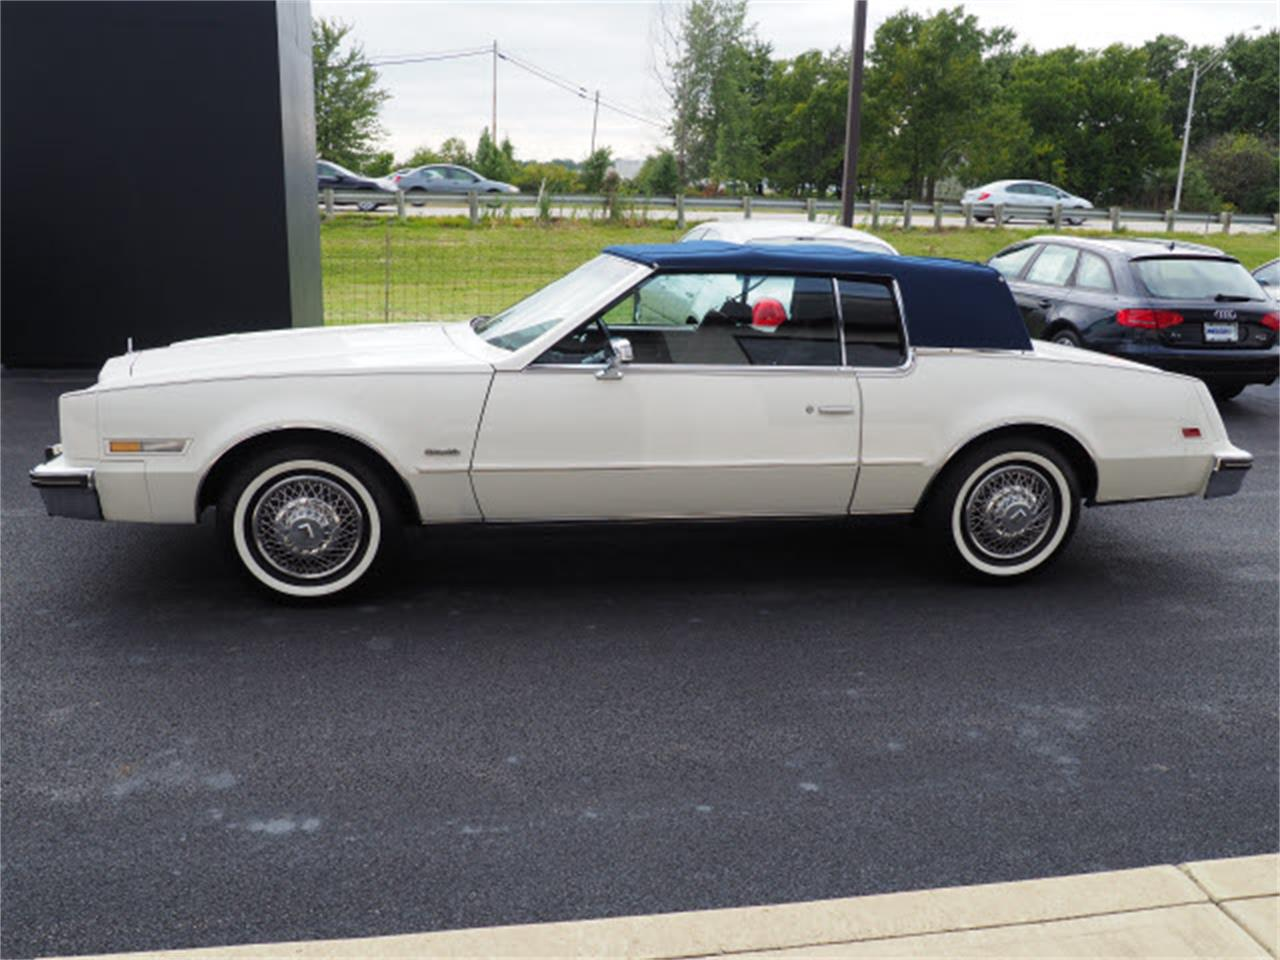 Large Picture of 1985 Oldsmobile Toronado located in Ohio - $14,999.00 Offered by Nelson Automotive, Ltd. - LUQO